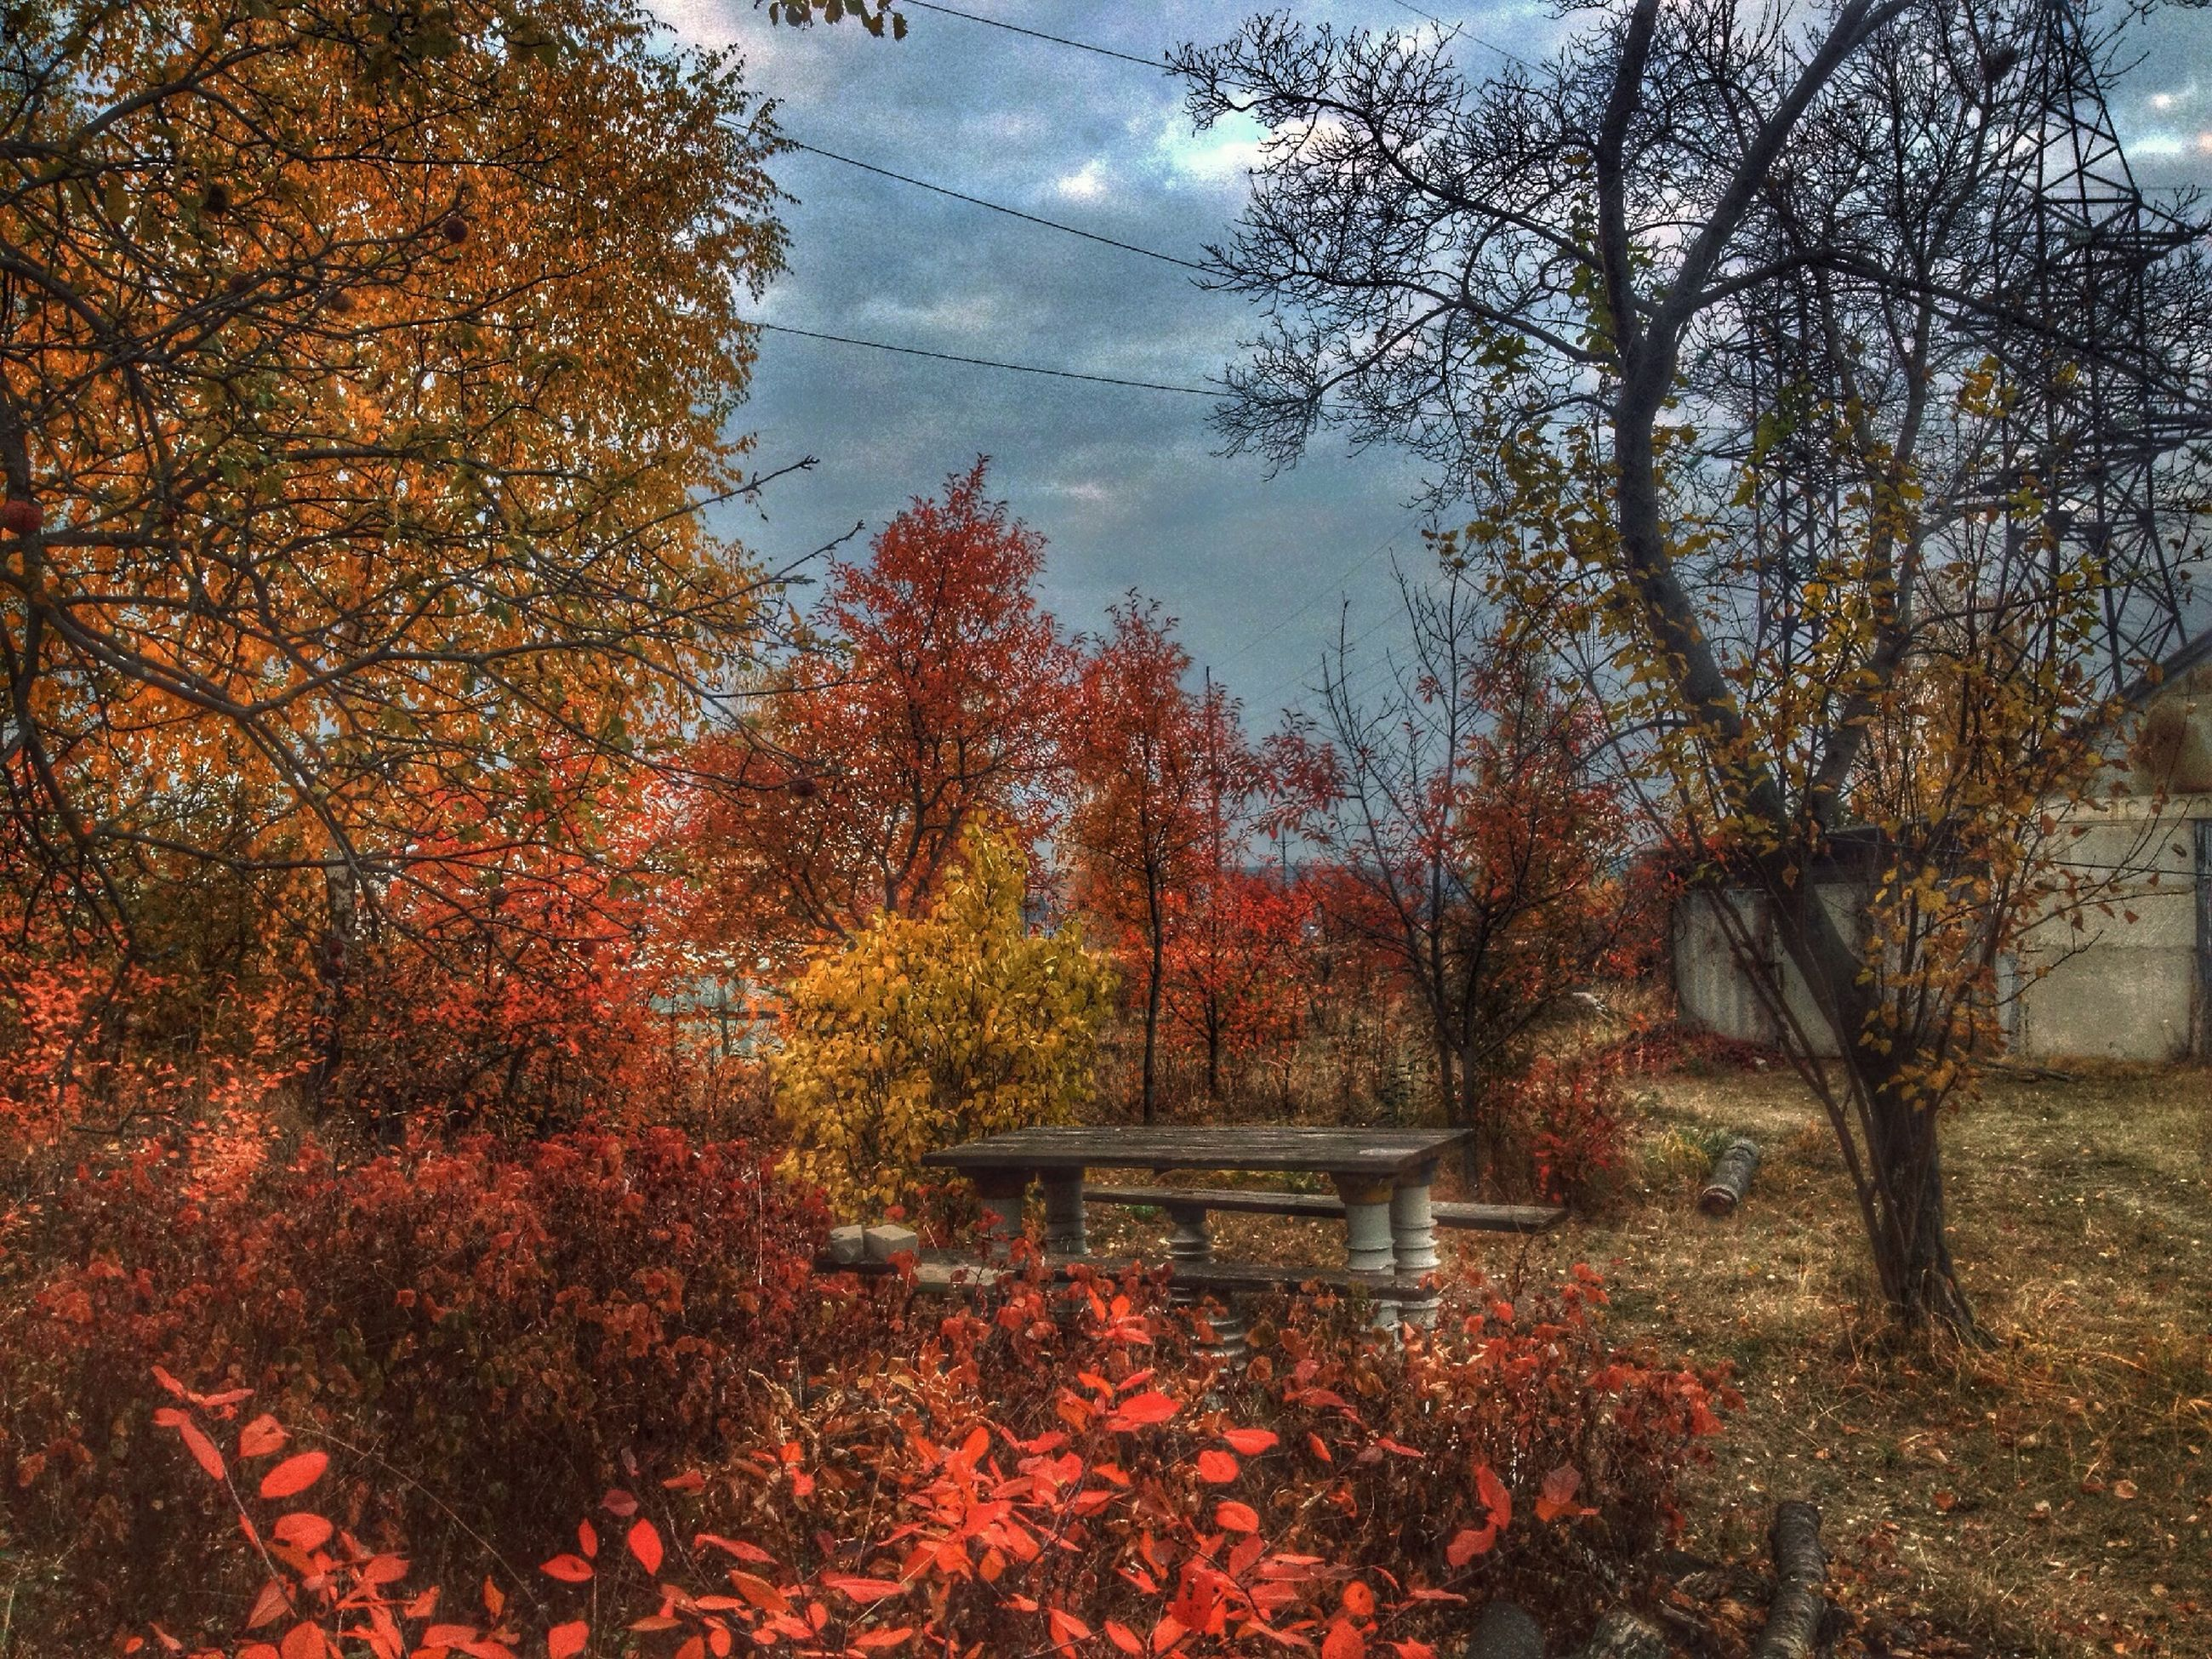 tree, autumn, branch, growth, change, nature, sky, built structure, season, tranquility, building exterior, red, park - man made space, tree trunk, architecture, beauty in nature, day, flower, outdoors, plant